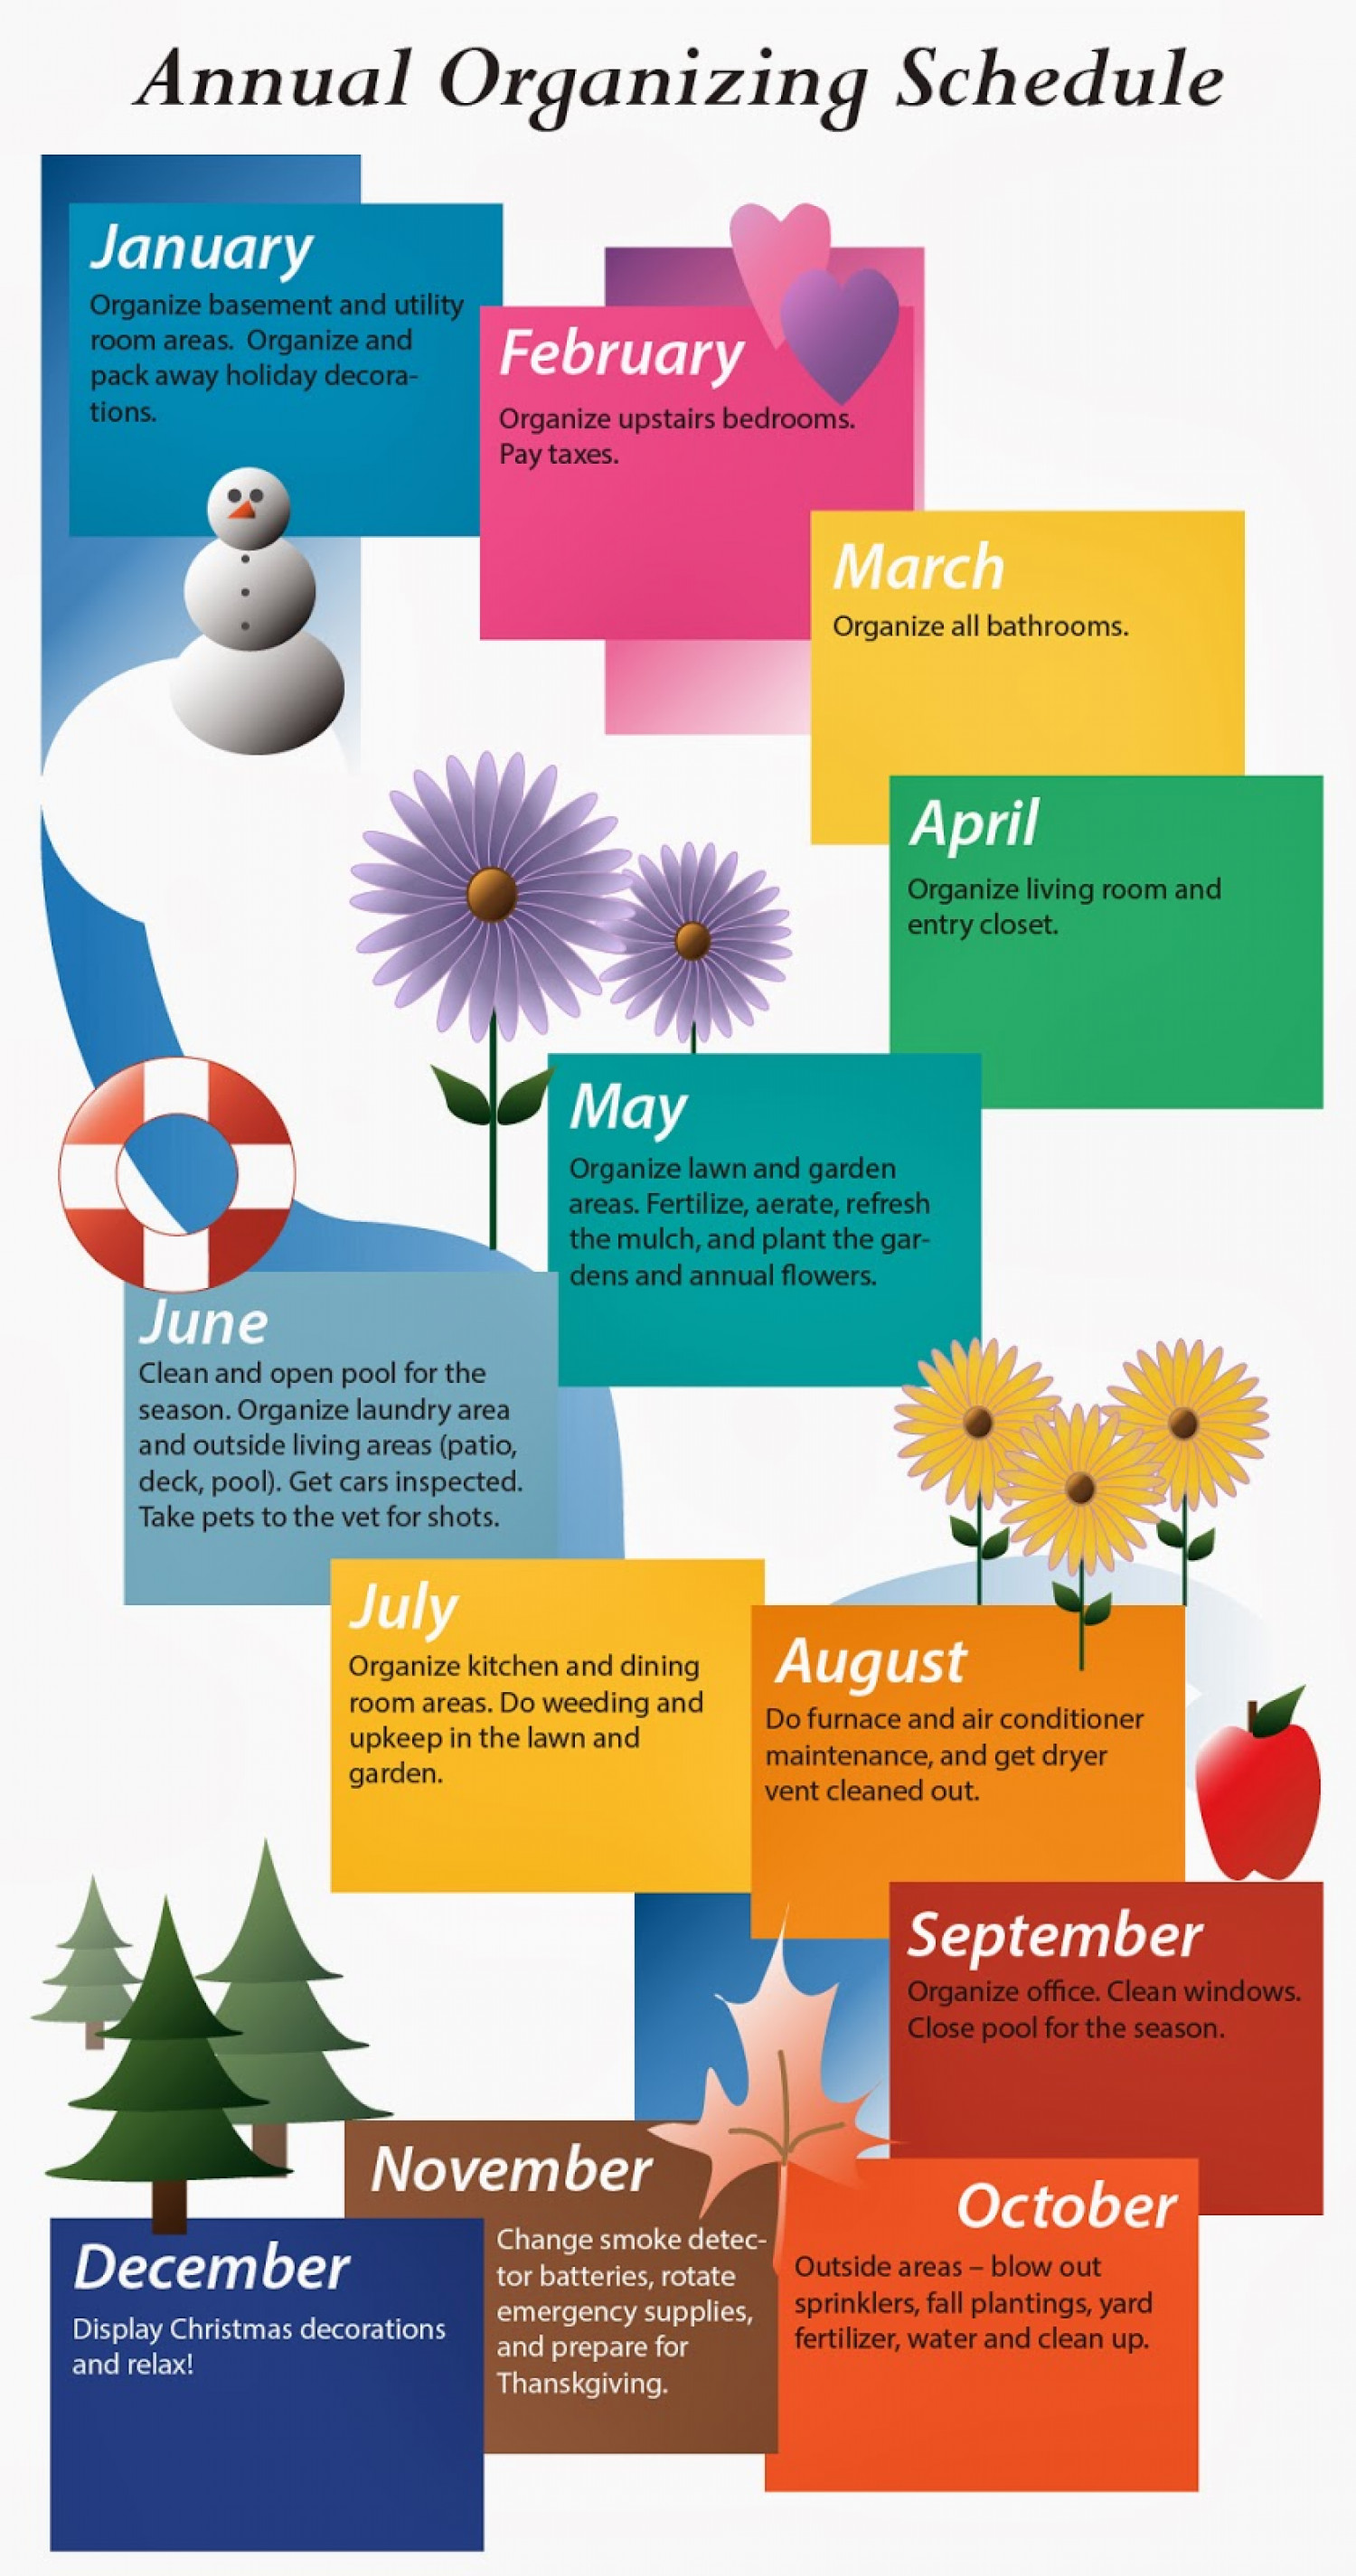 Annual Organizing Schedule Infographic